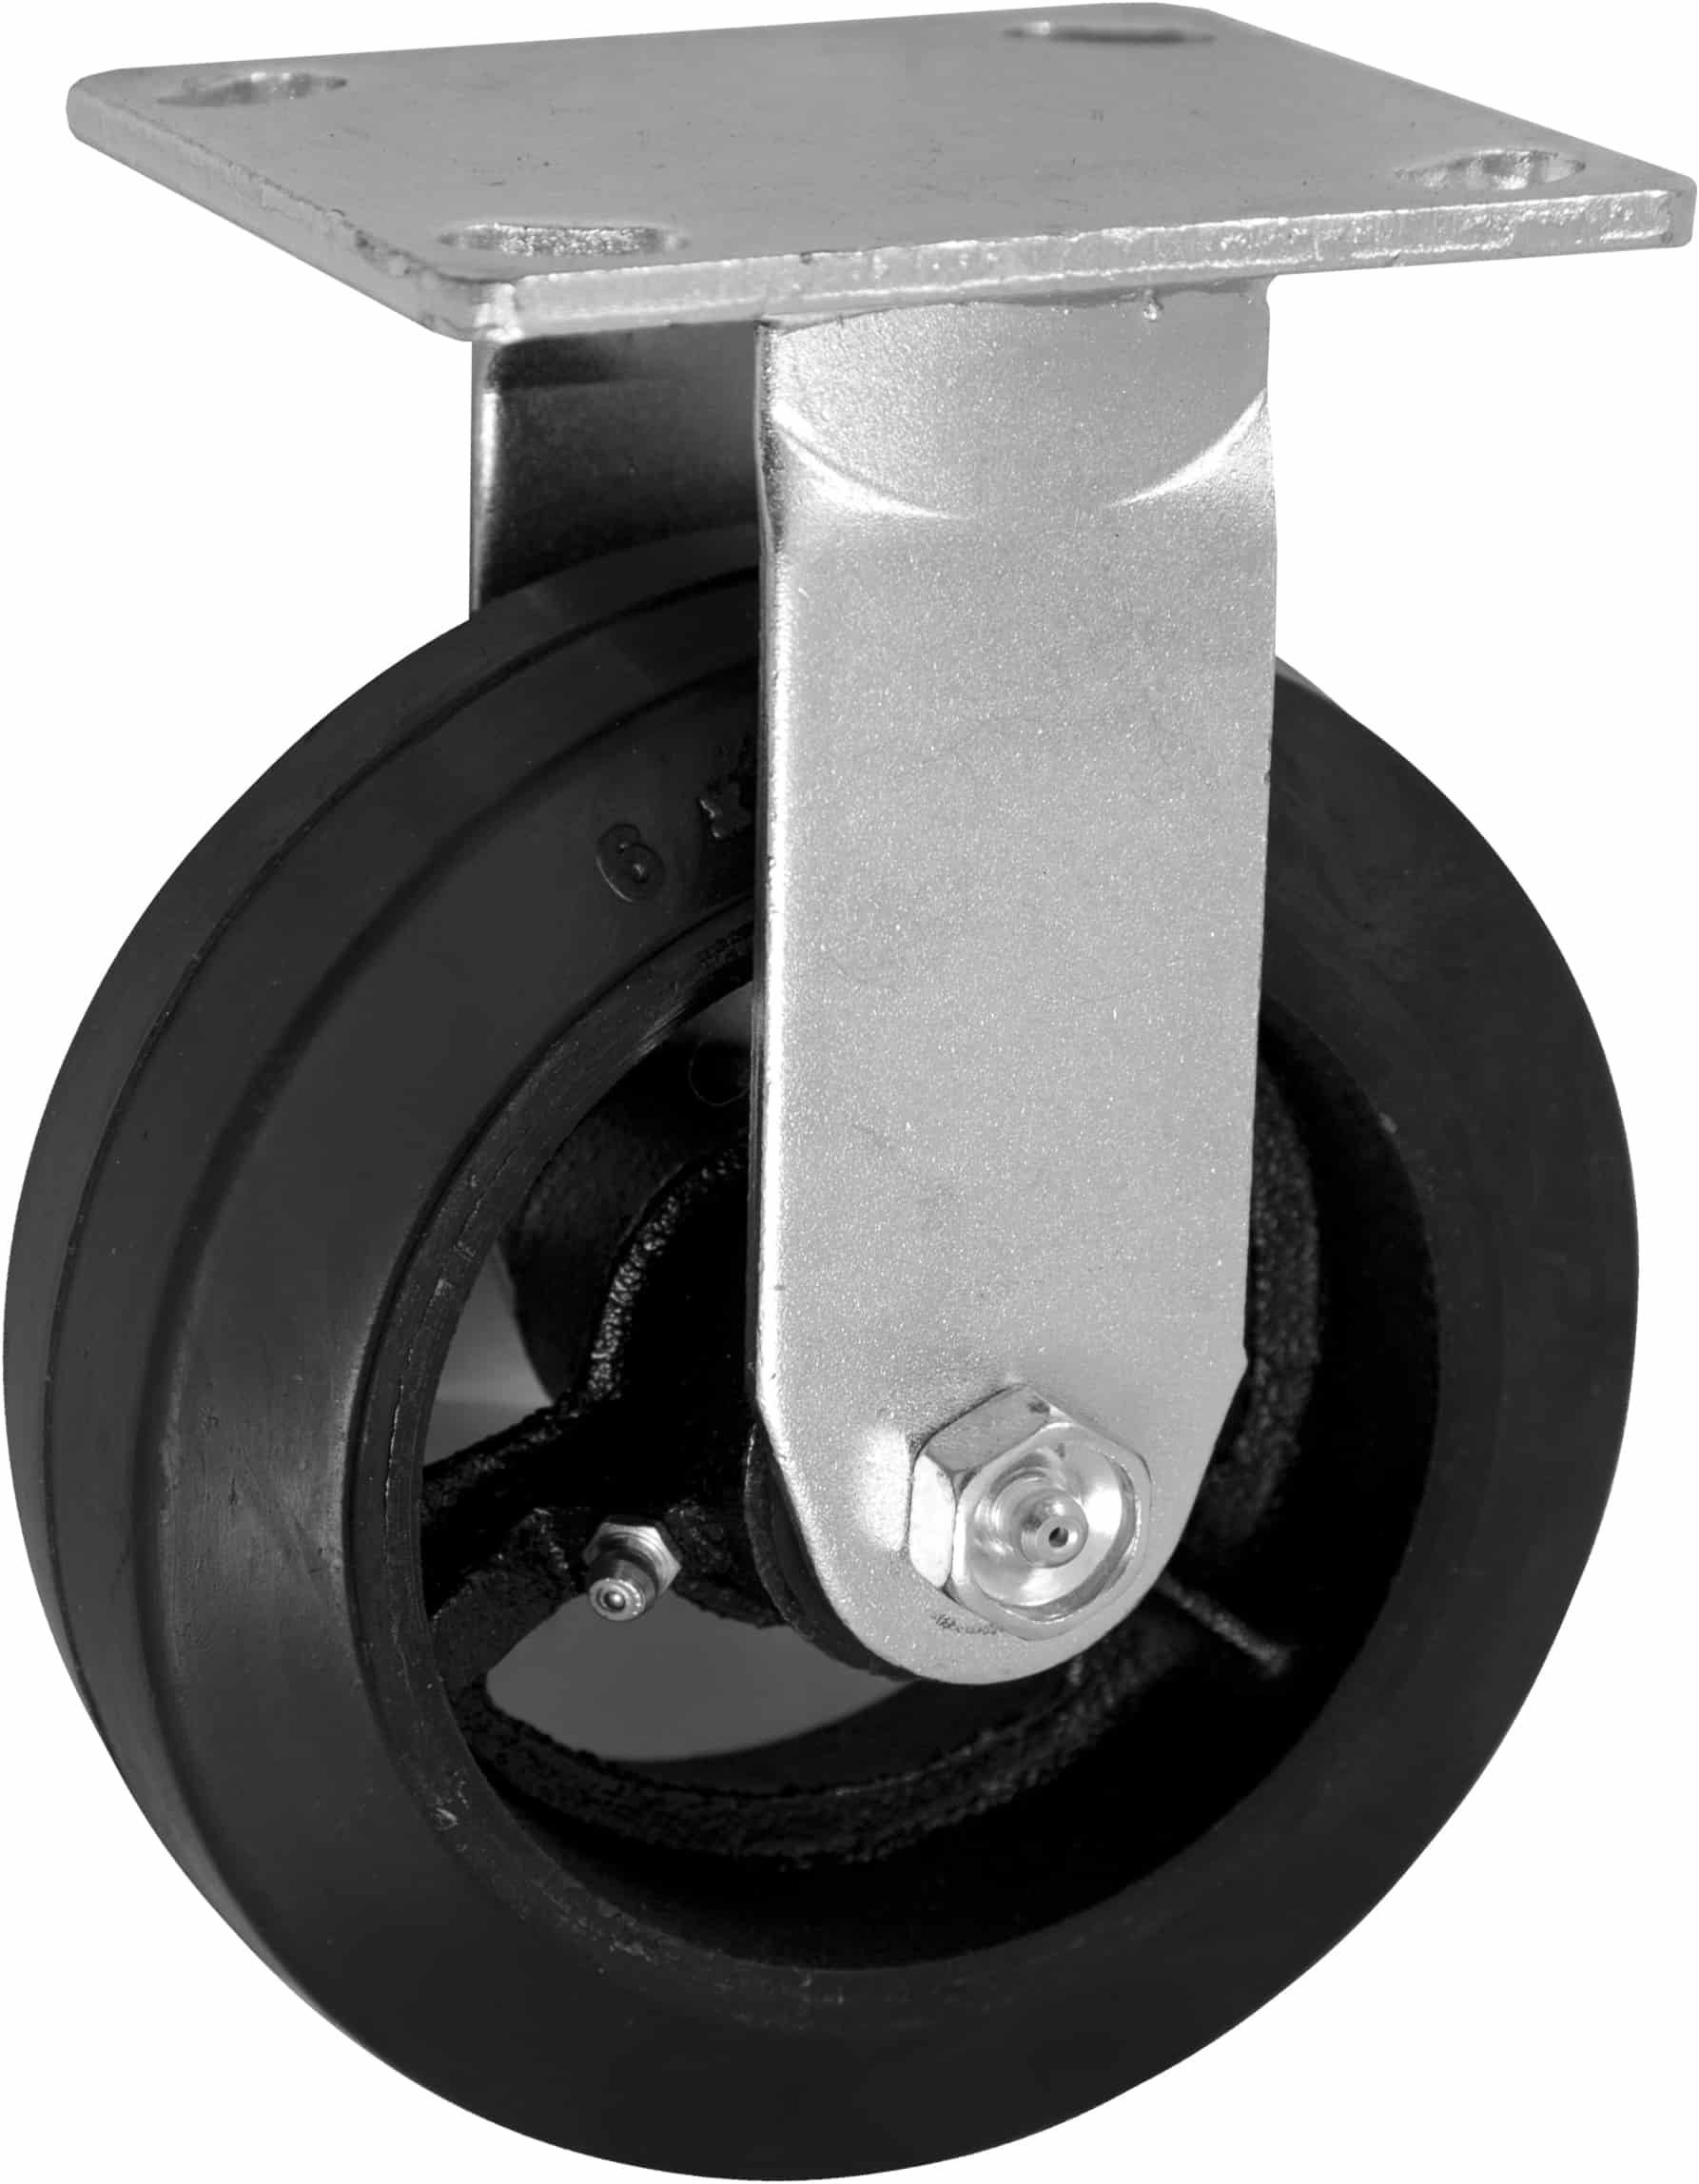 "Rigid Mold on Rubber Caster with 4"" x 4-1/2"" Top Plate"